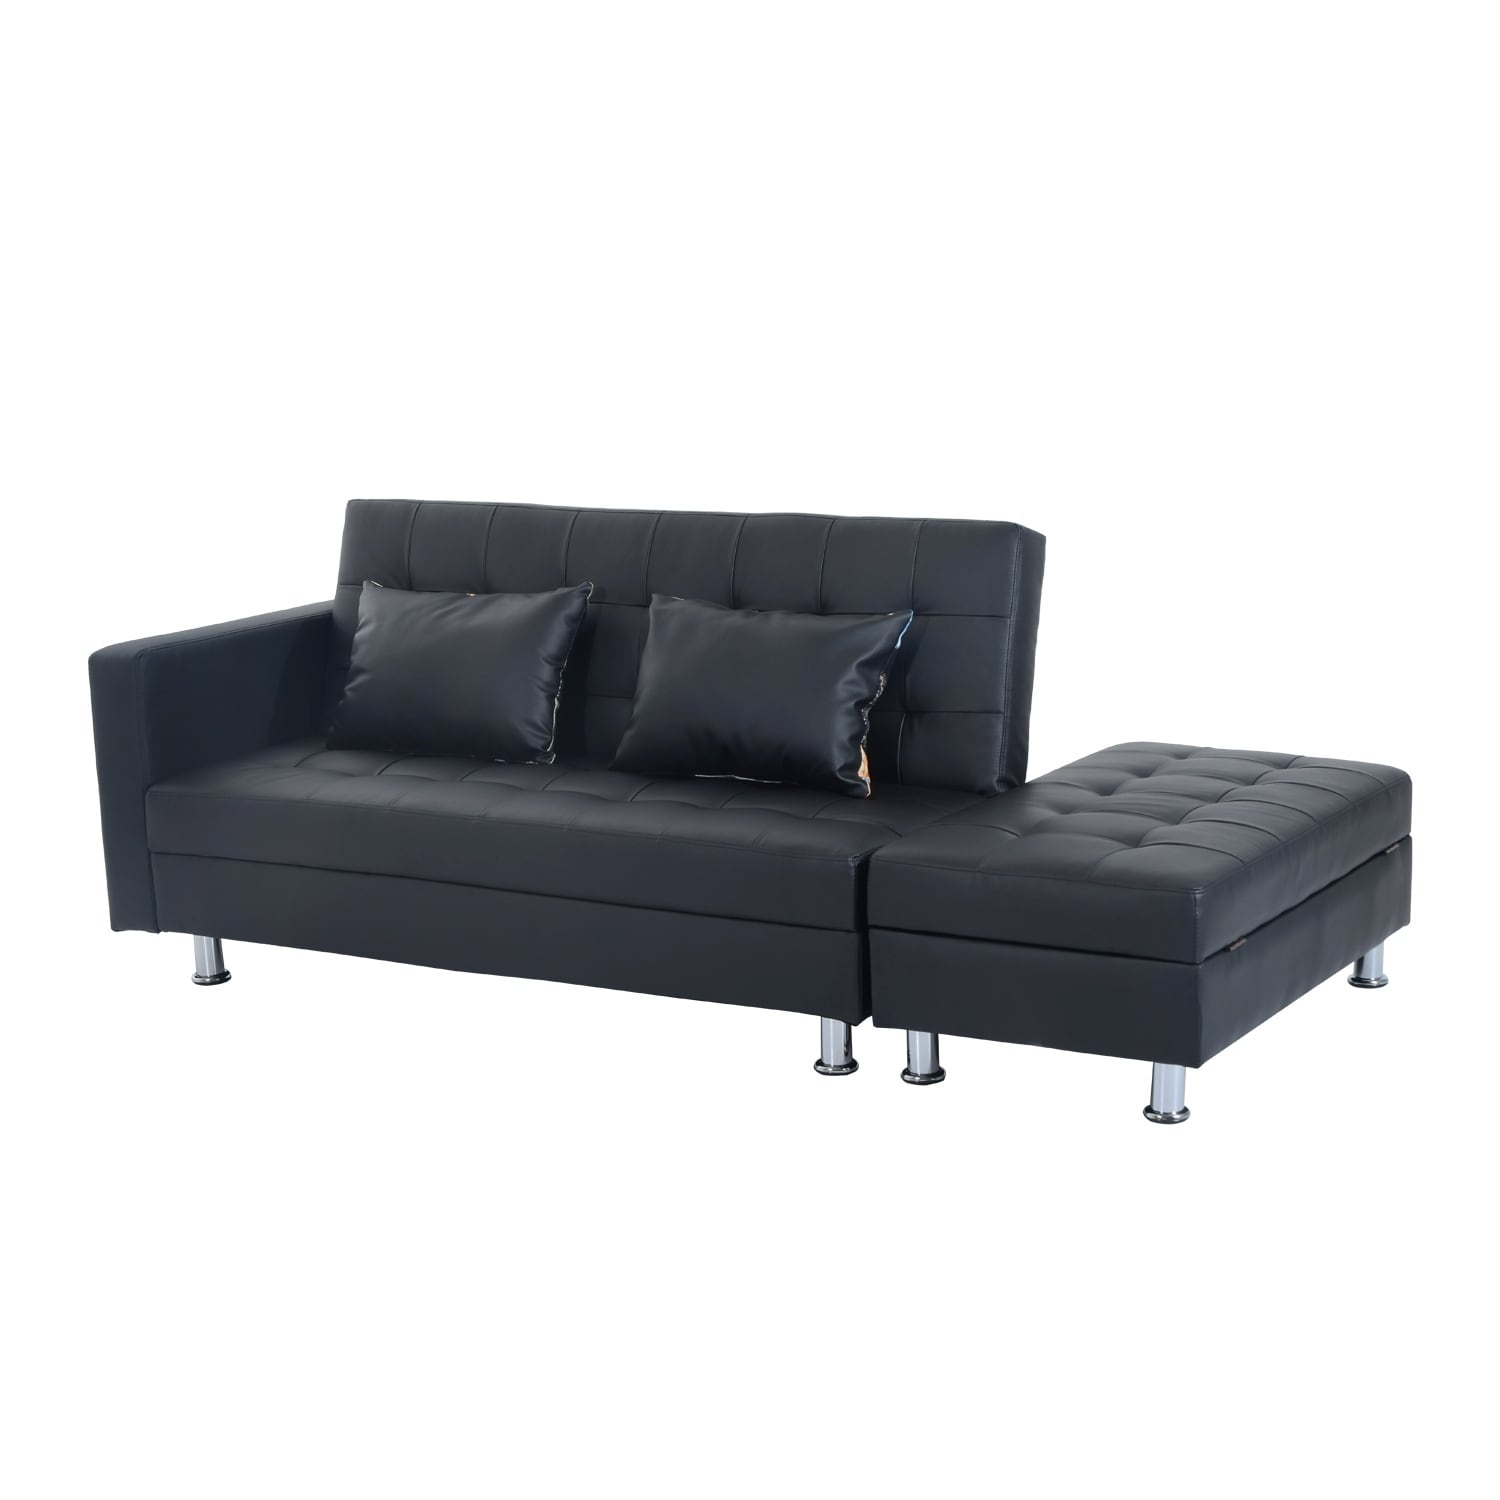 Homcom Faux Leather Convertible Sofa Sleeper Bed W Storage Ottoman Free Shipping Today 17966927